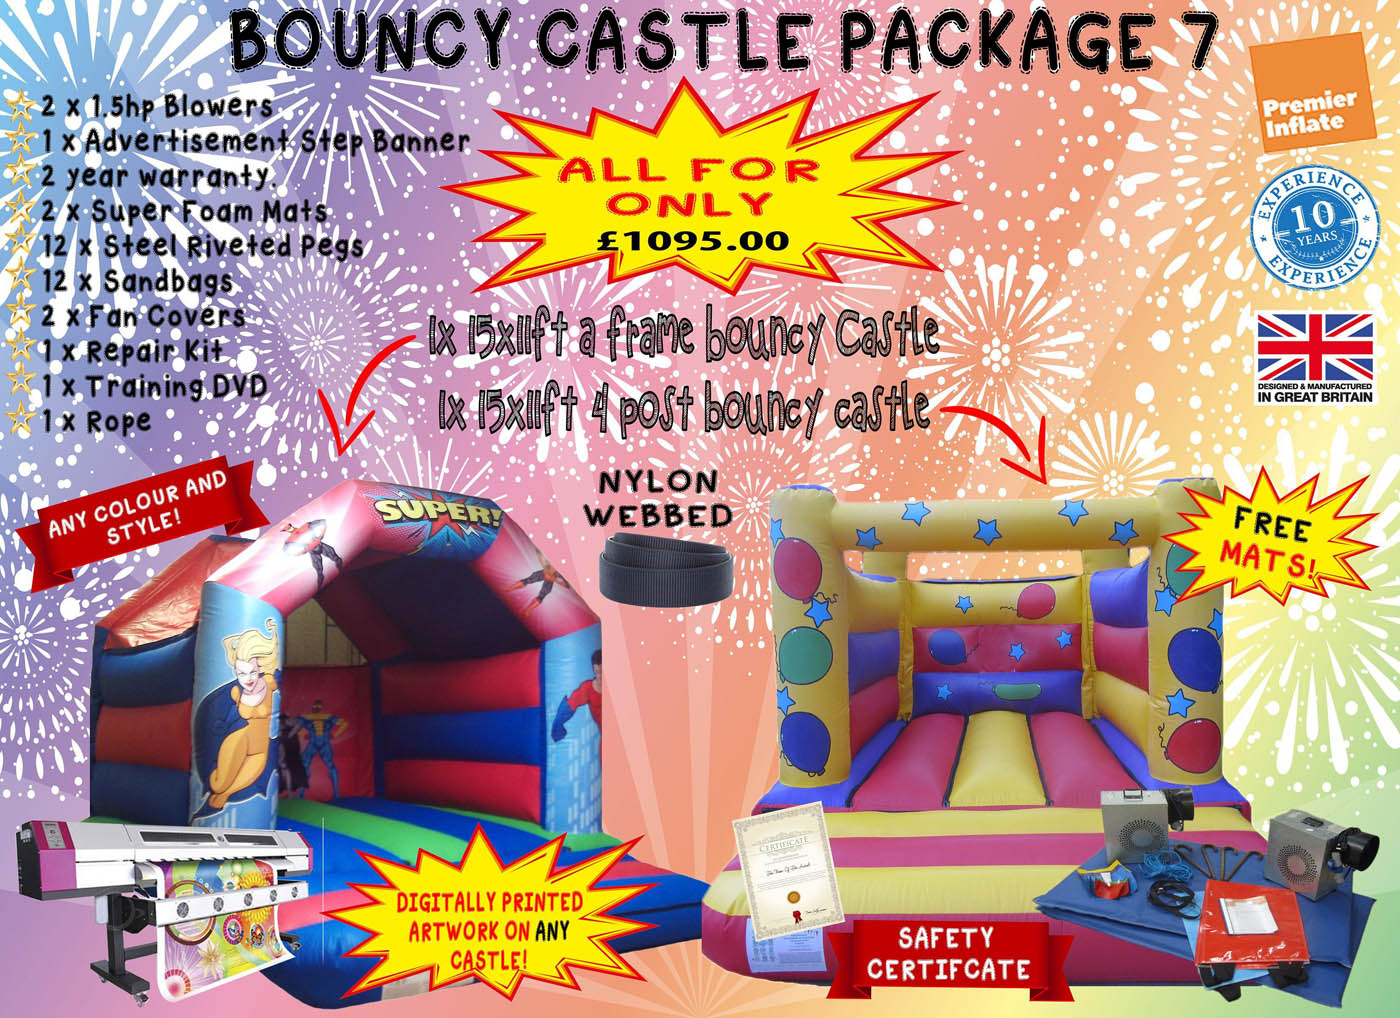 15x11-mix-bouncy-castle-package-7-compressor